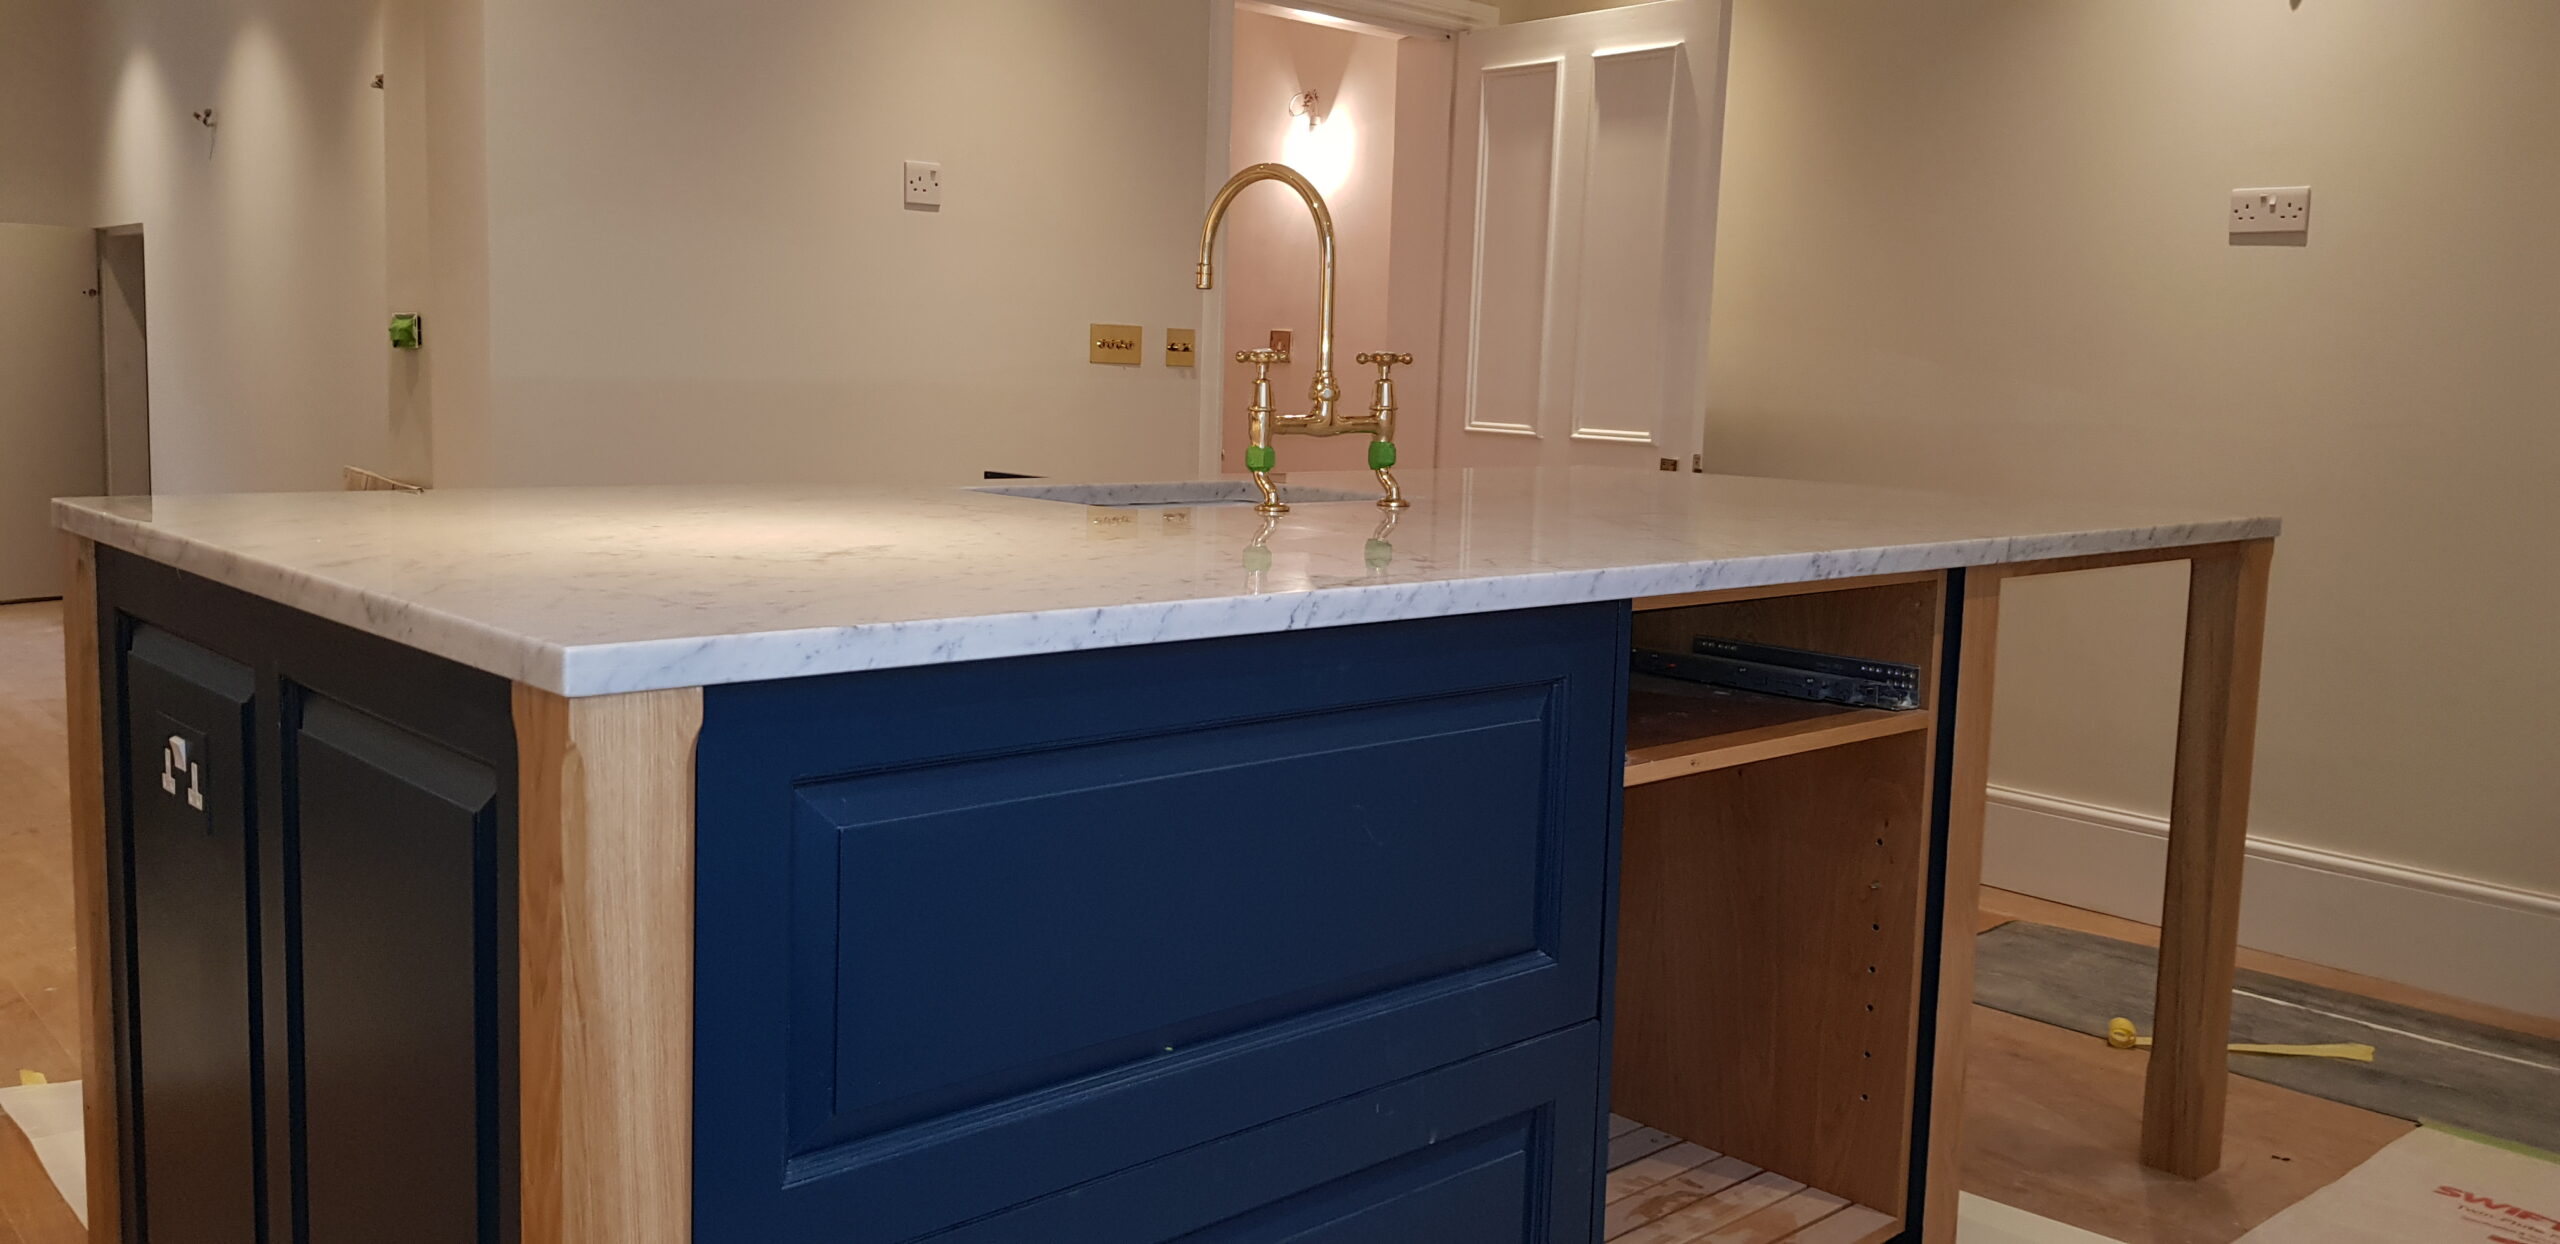 Richmond - refurbished kitchen island with tap